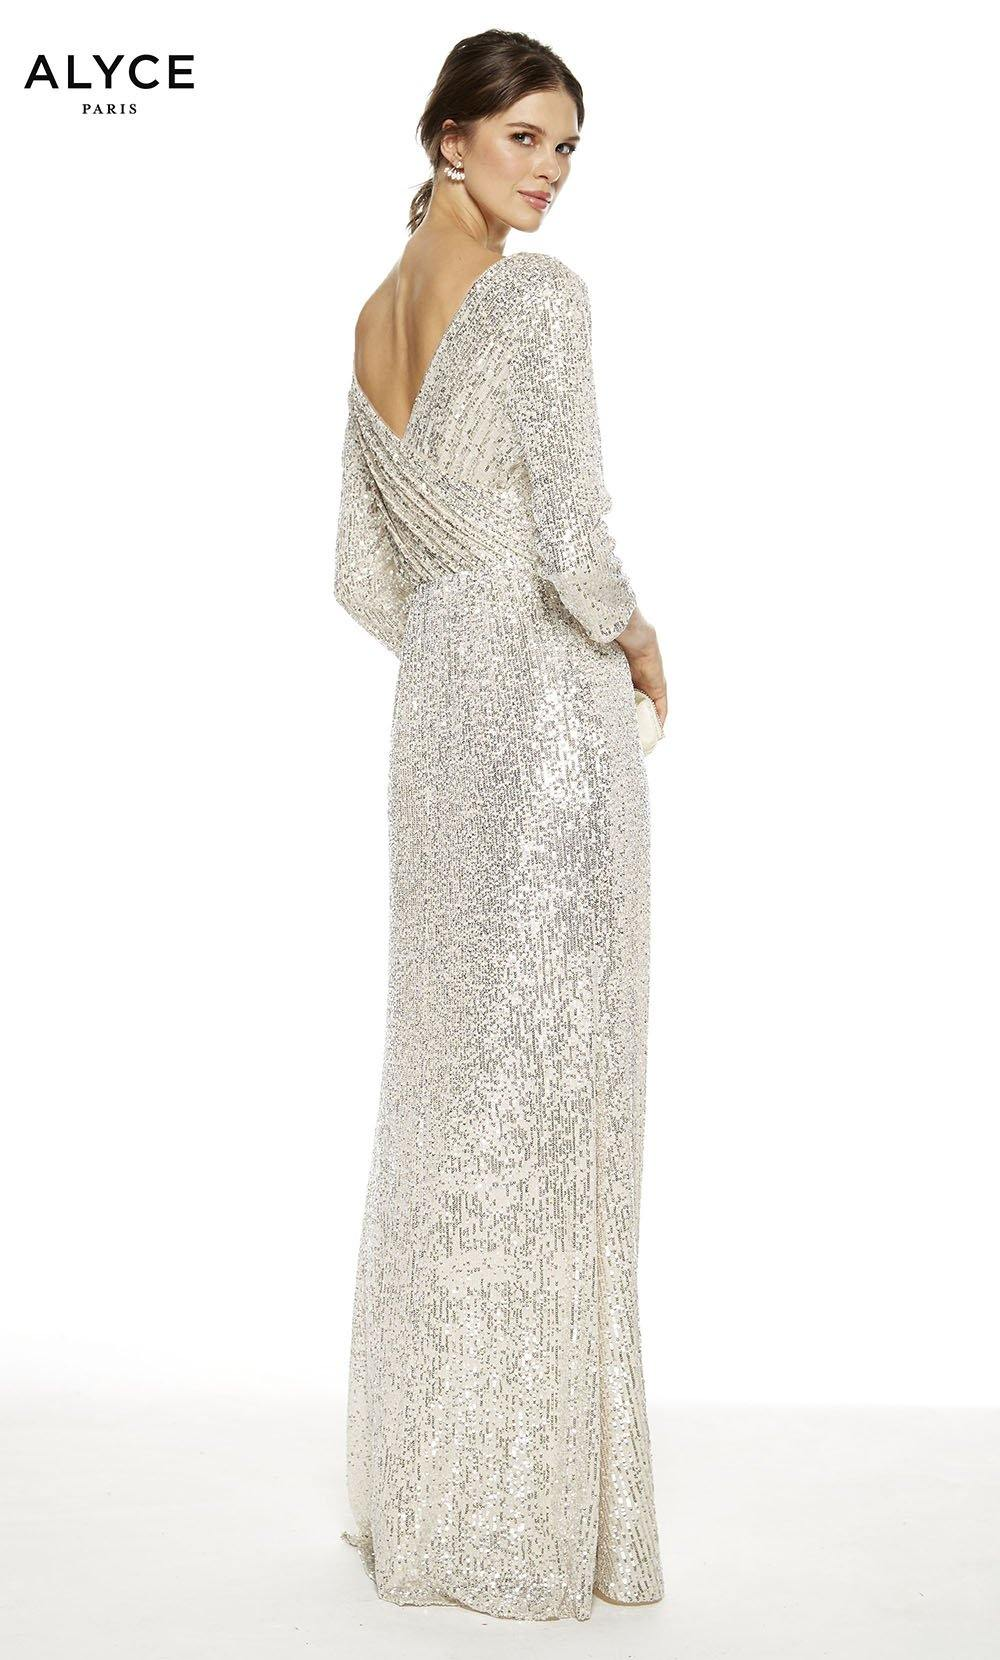 Sand colored sequin formal dress with a v-shaped back